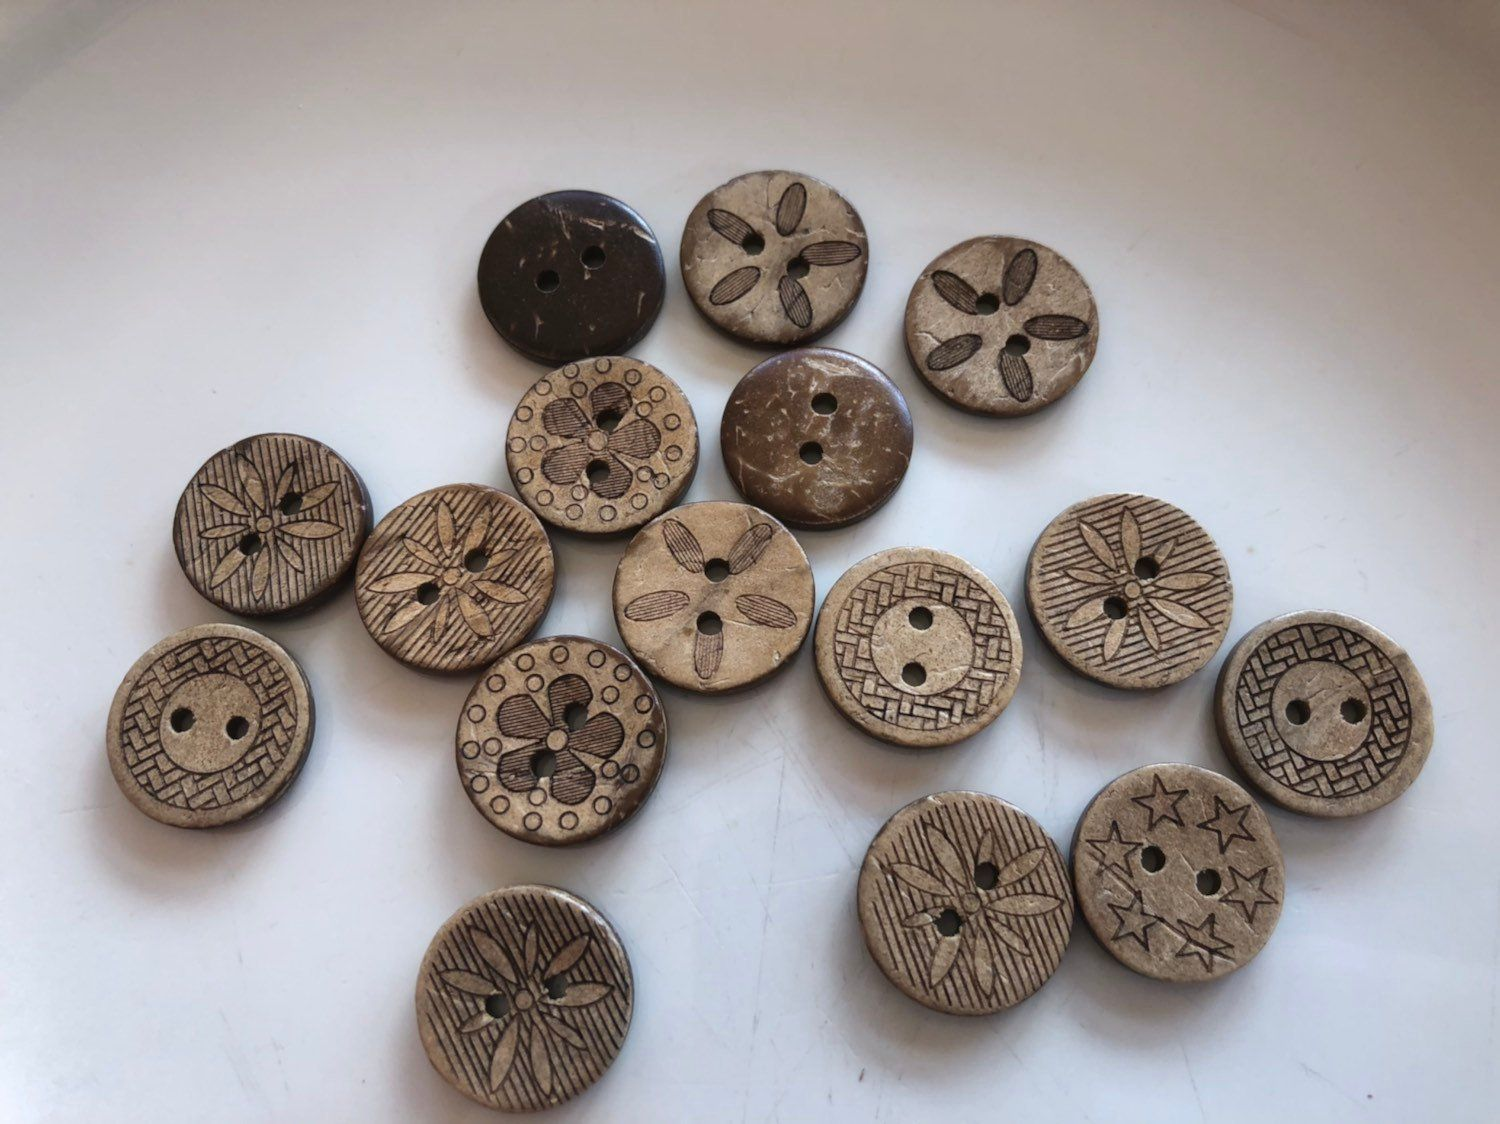 Pack of 100 Mixed Color Printed Round Wood Buttons for Sewing DIY Craft 15mm